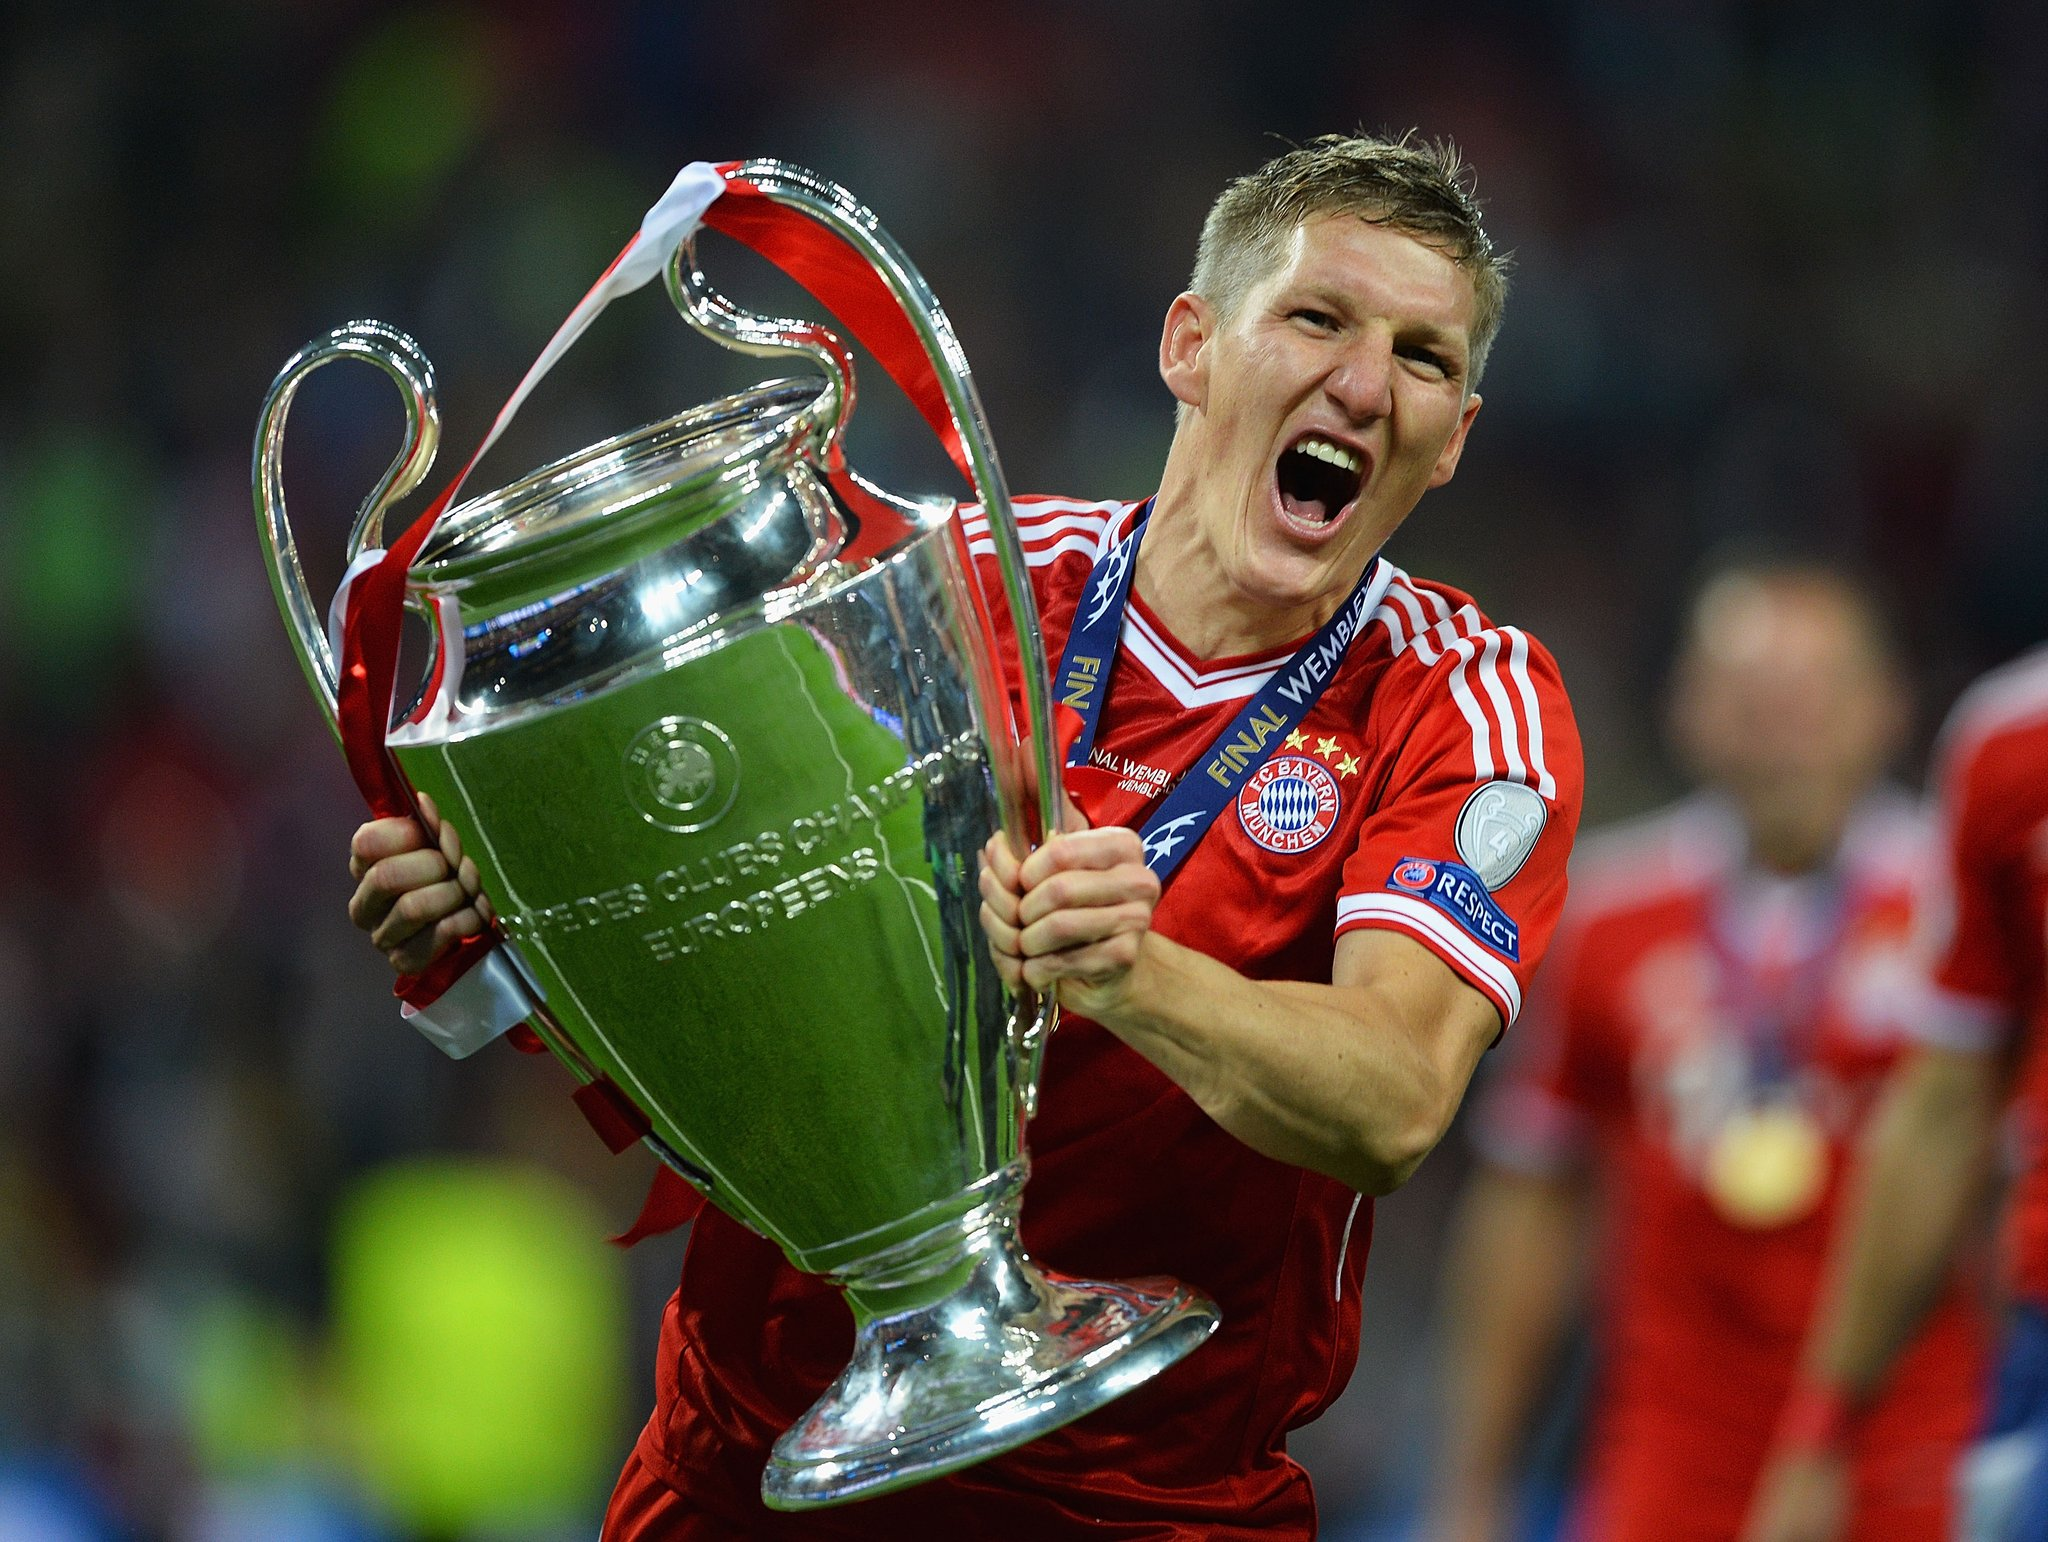 5⃣years ago today, Bayern became champions! ��������  #UCLfinal #OnThisDay https://t.co/w0xMoObsUN